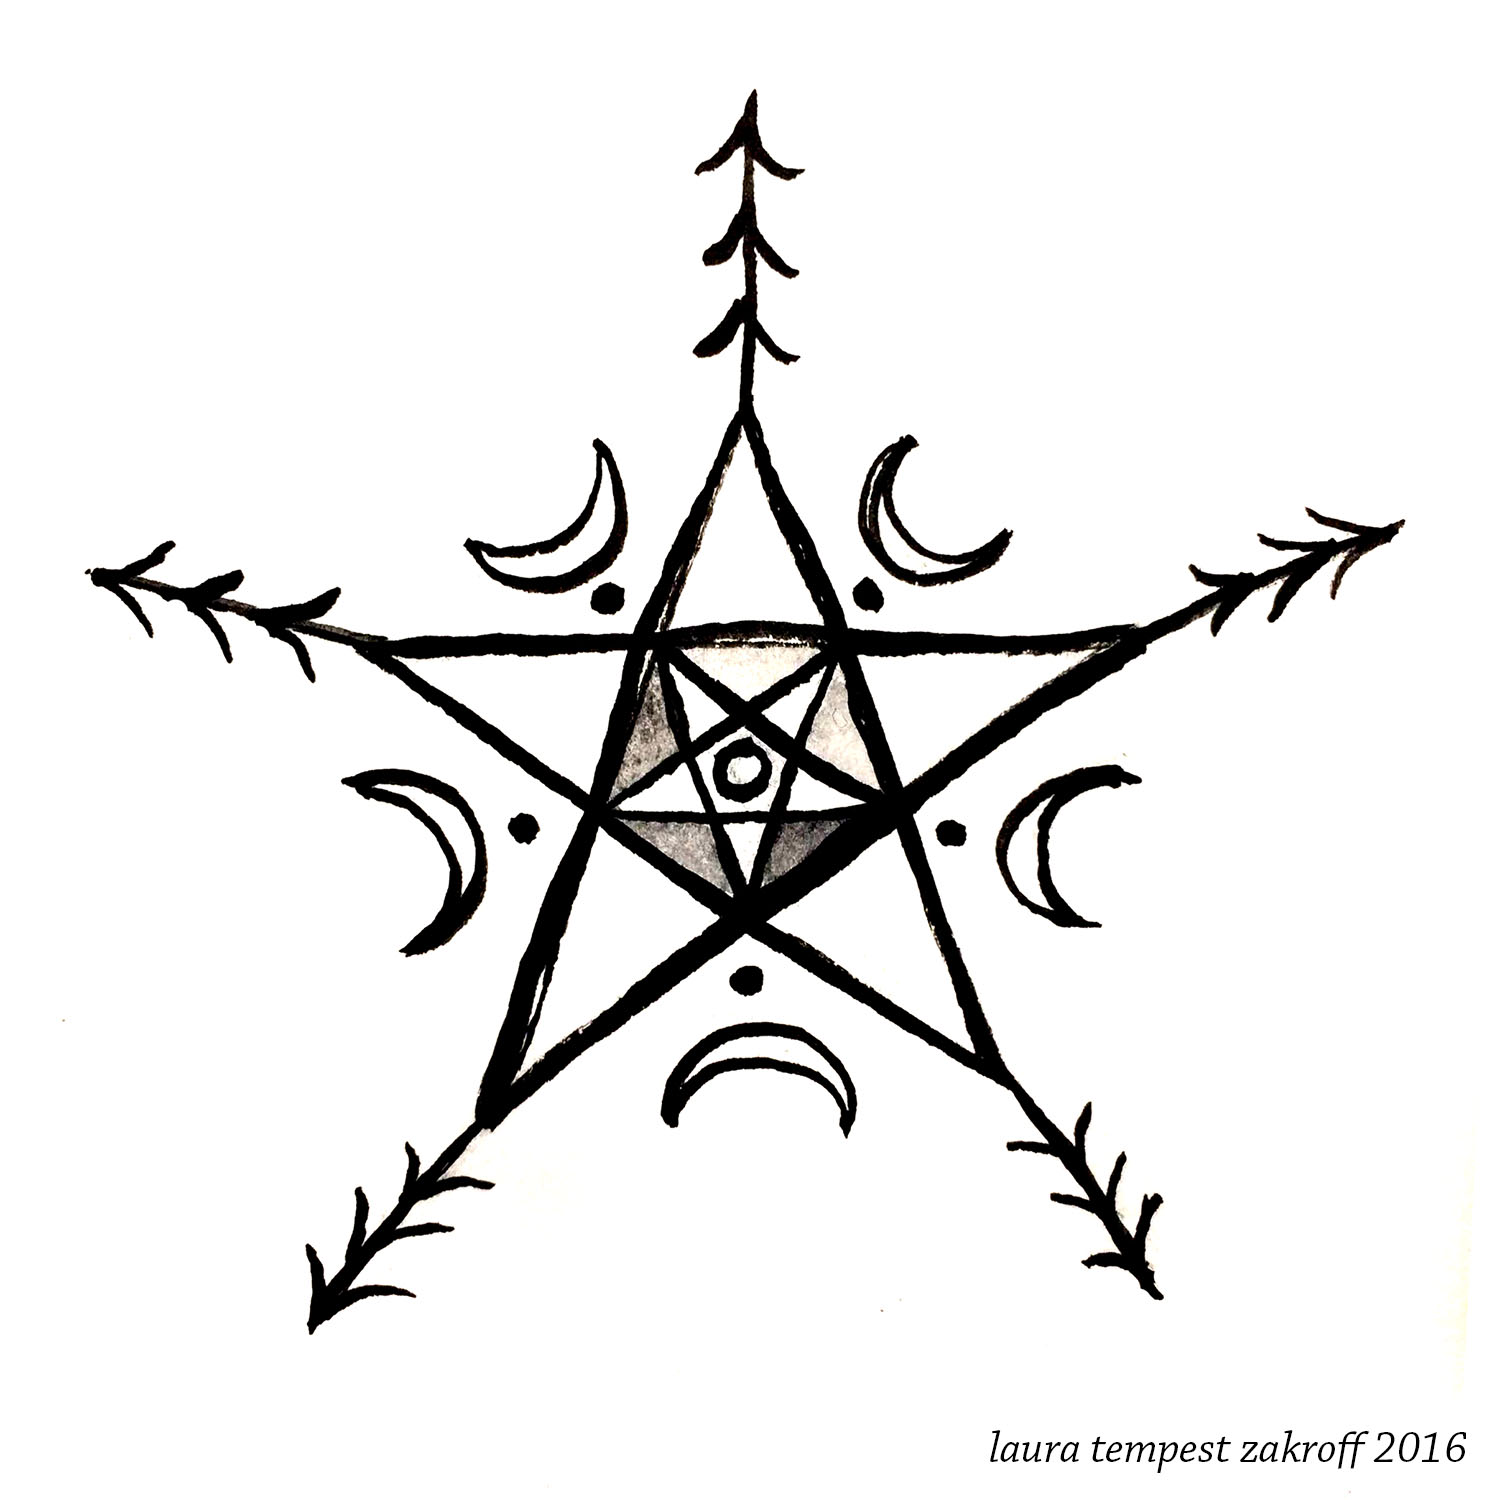 A Power Sigil For Our Times